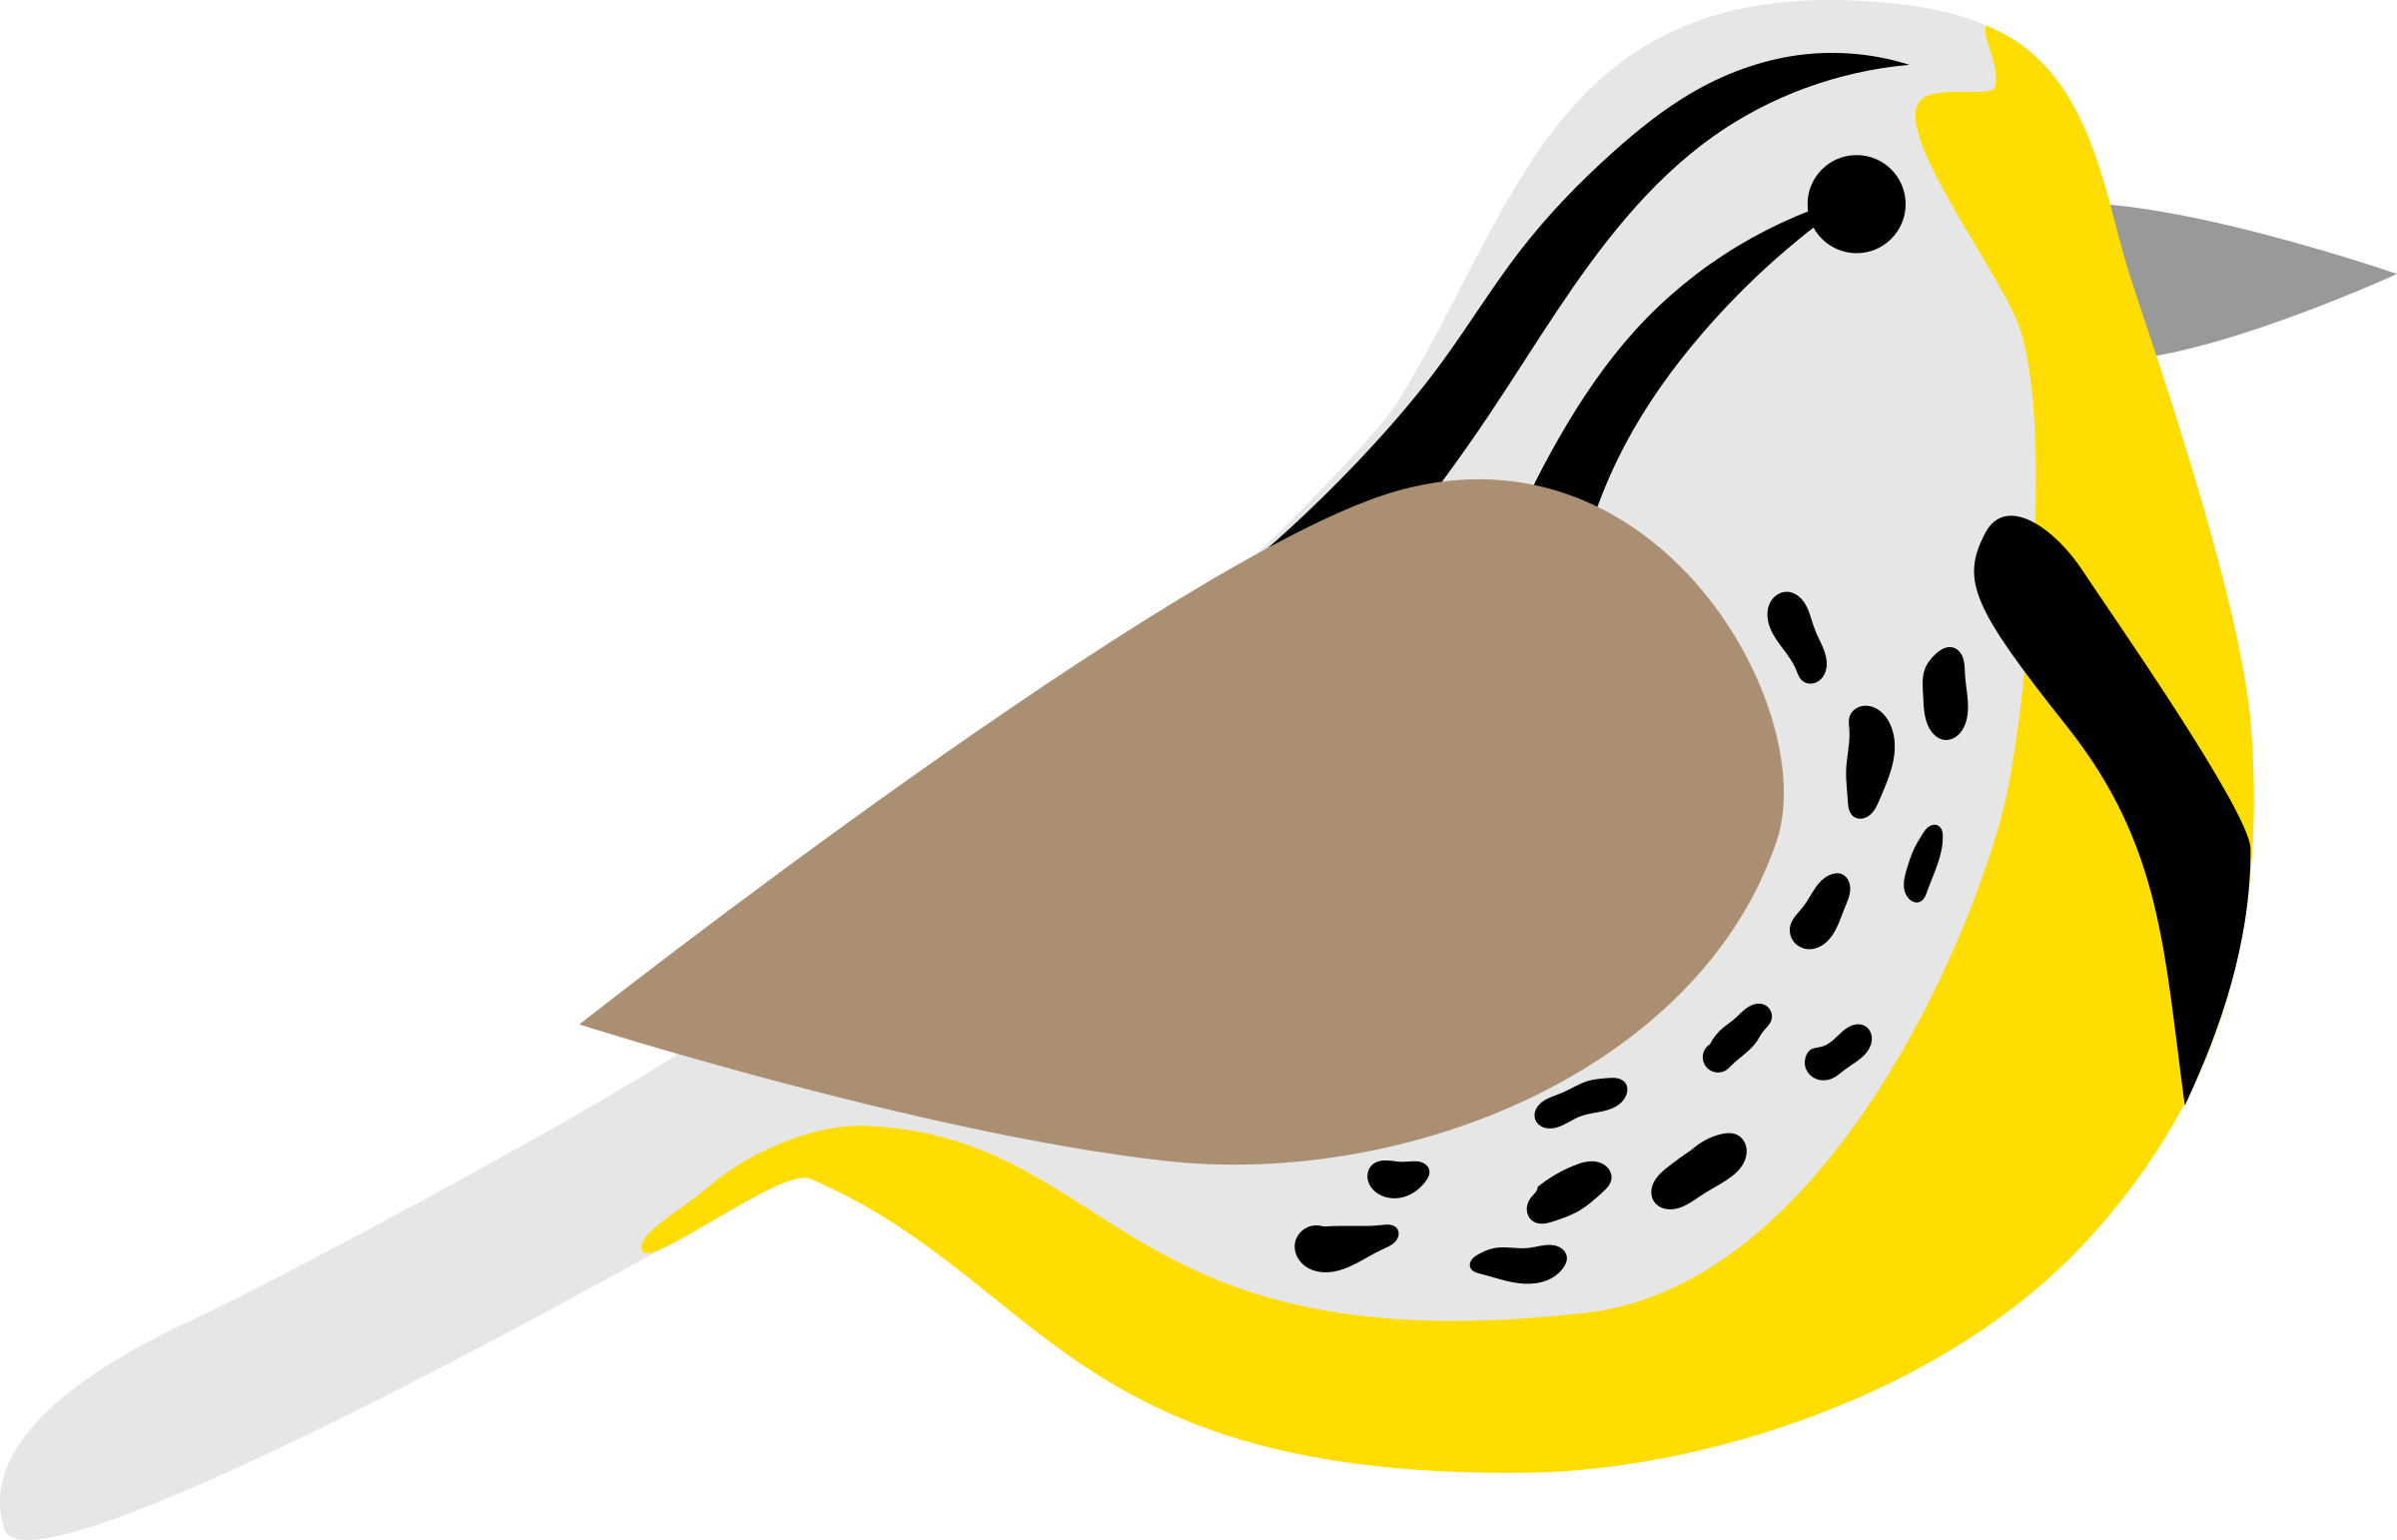 black and white download Western meadowlark clipart. Icons png free and